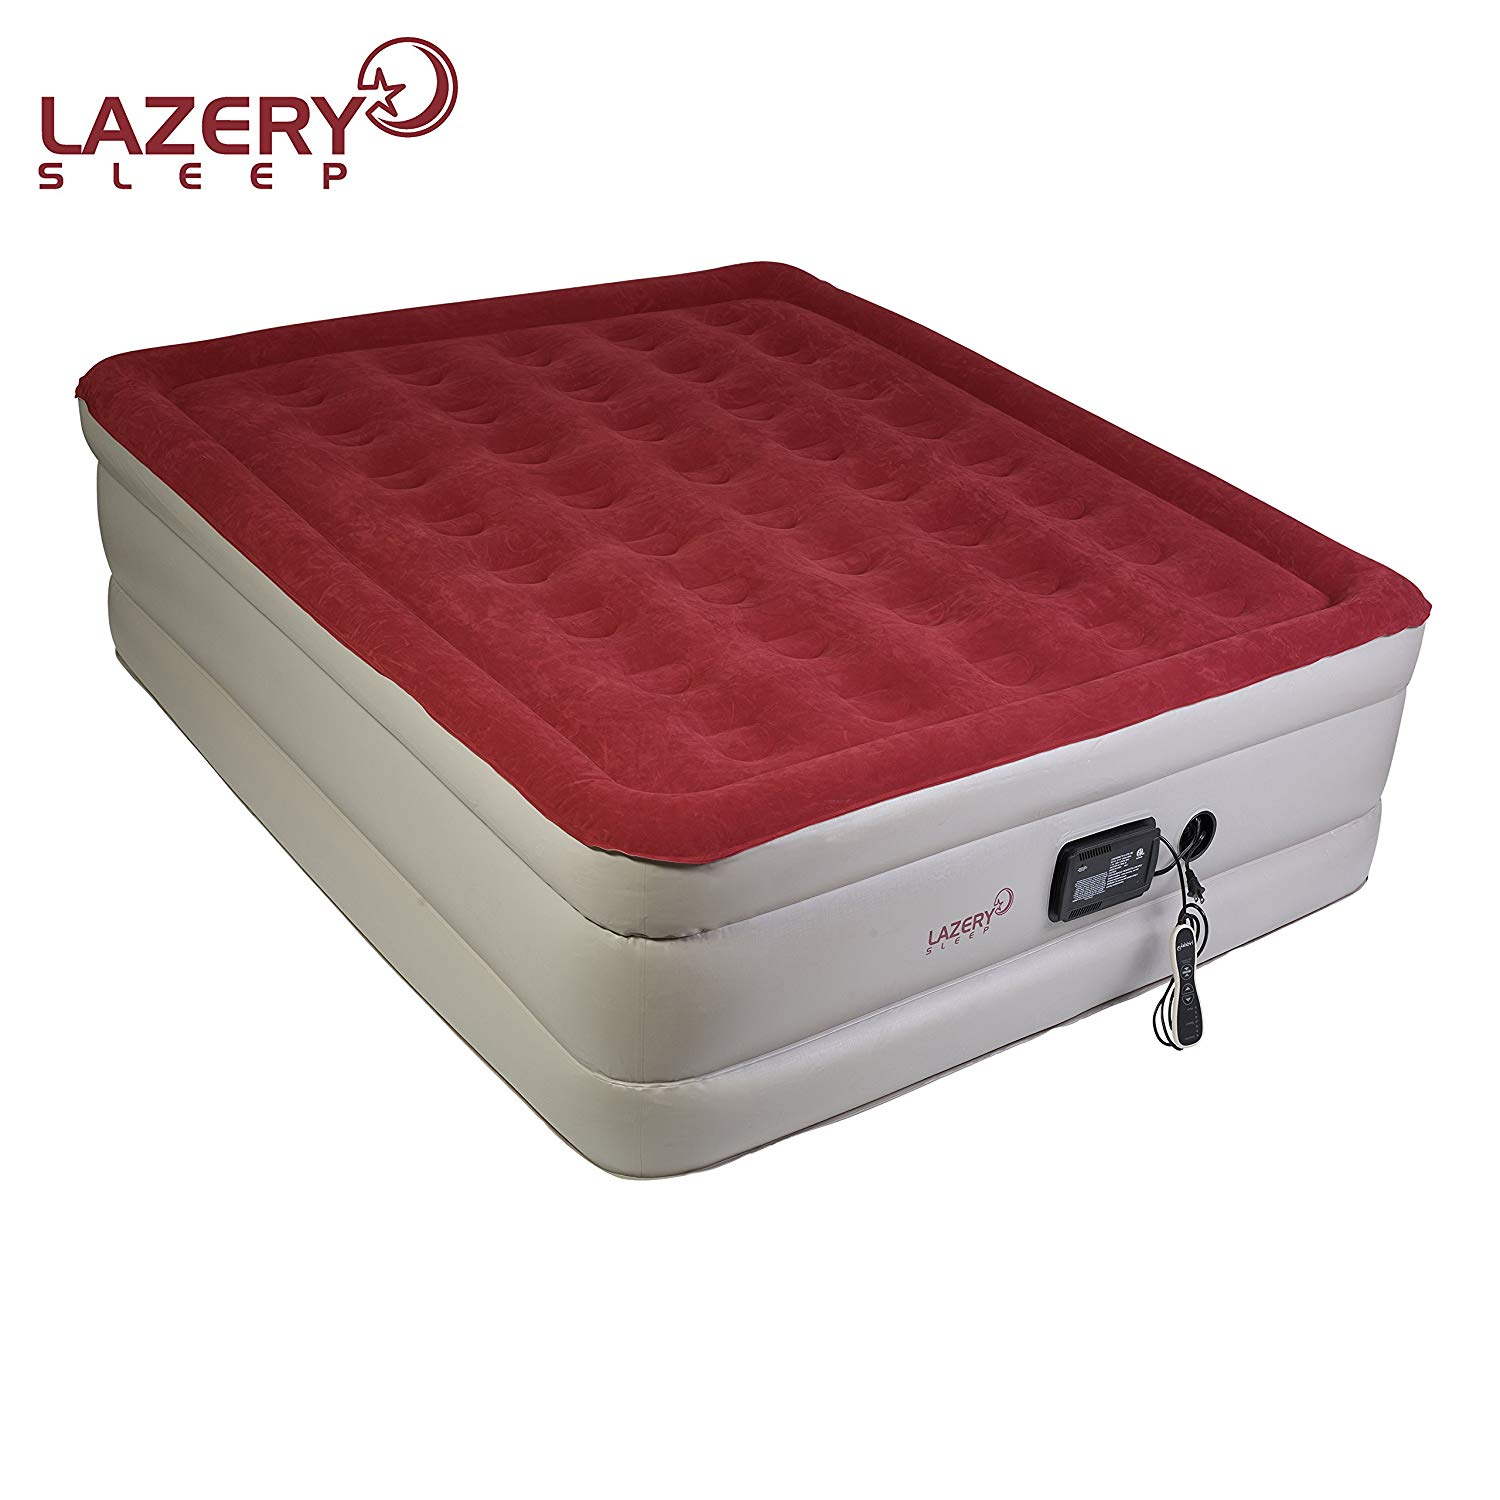 best air mattresses to use at home 3 Top 6 Best Rated Air Mattress 2021 - Home Air Mattresses Reviews